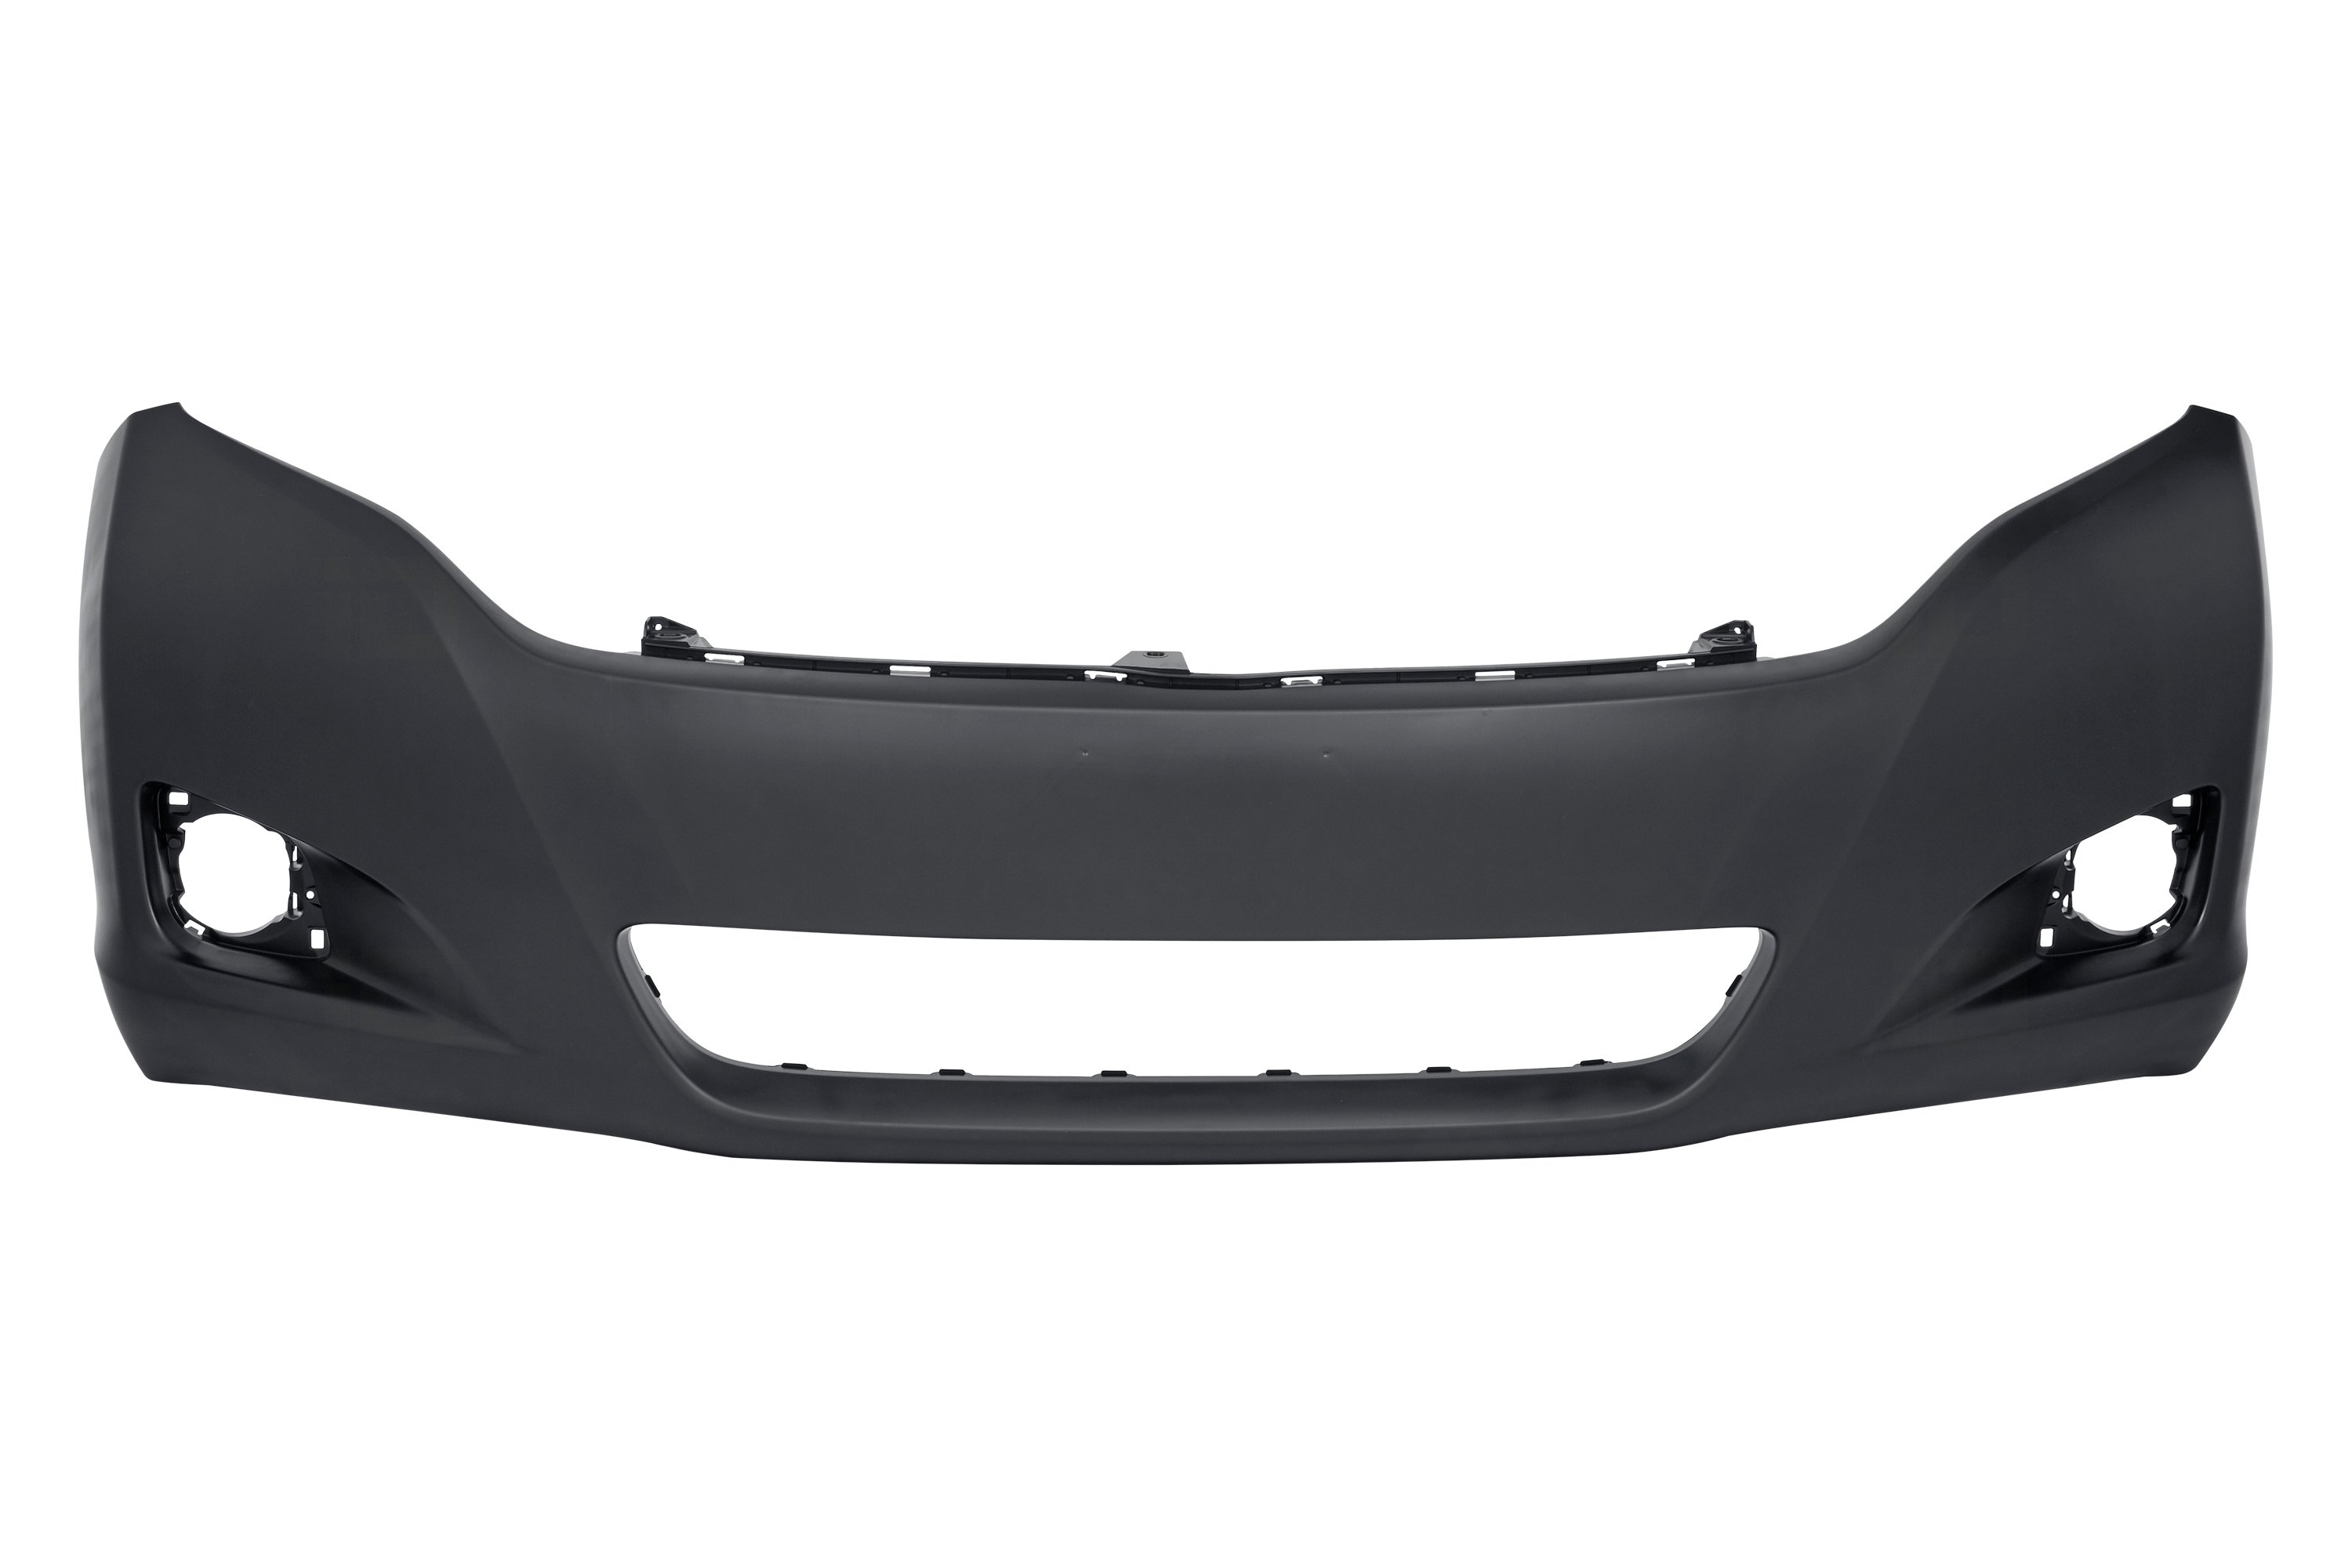 NEW fits 2013 2014 2015 TOYOTA VENZA Front Bumper Painted TO1000354